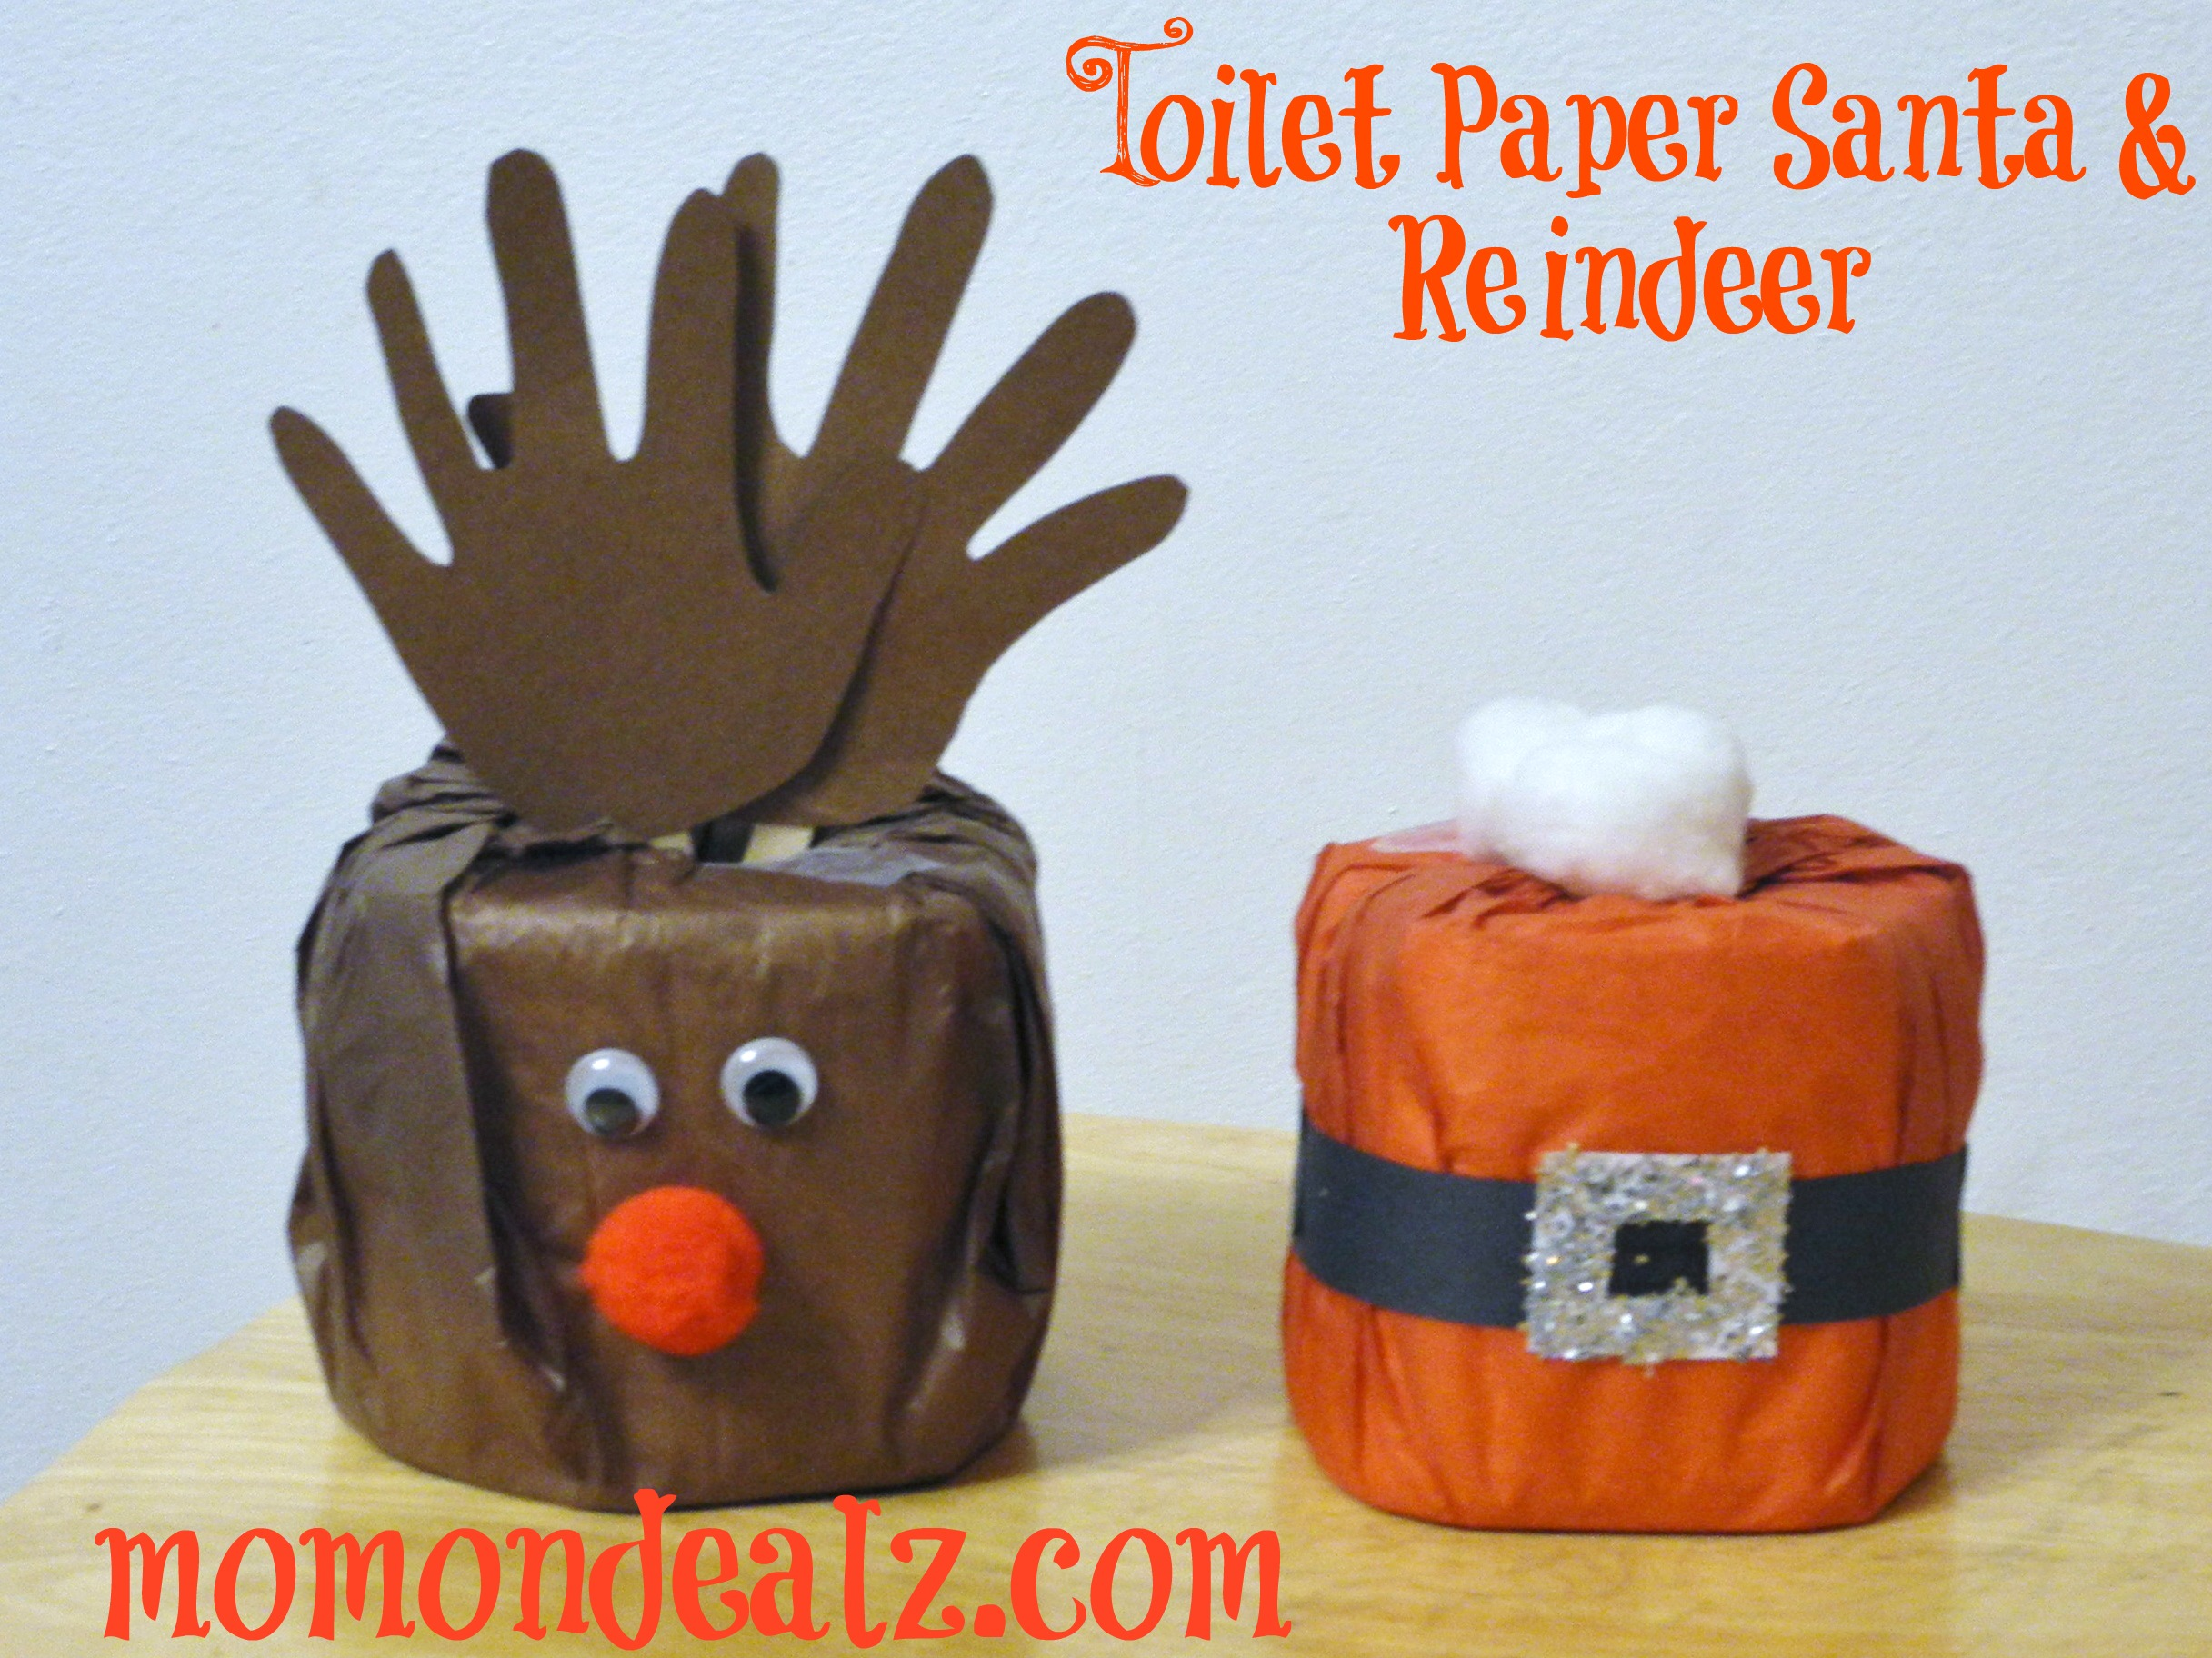 Christmas crafts toilet paper santa and reindeer jeuxipadfo Image collections